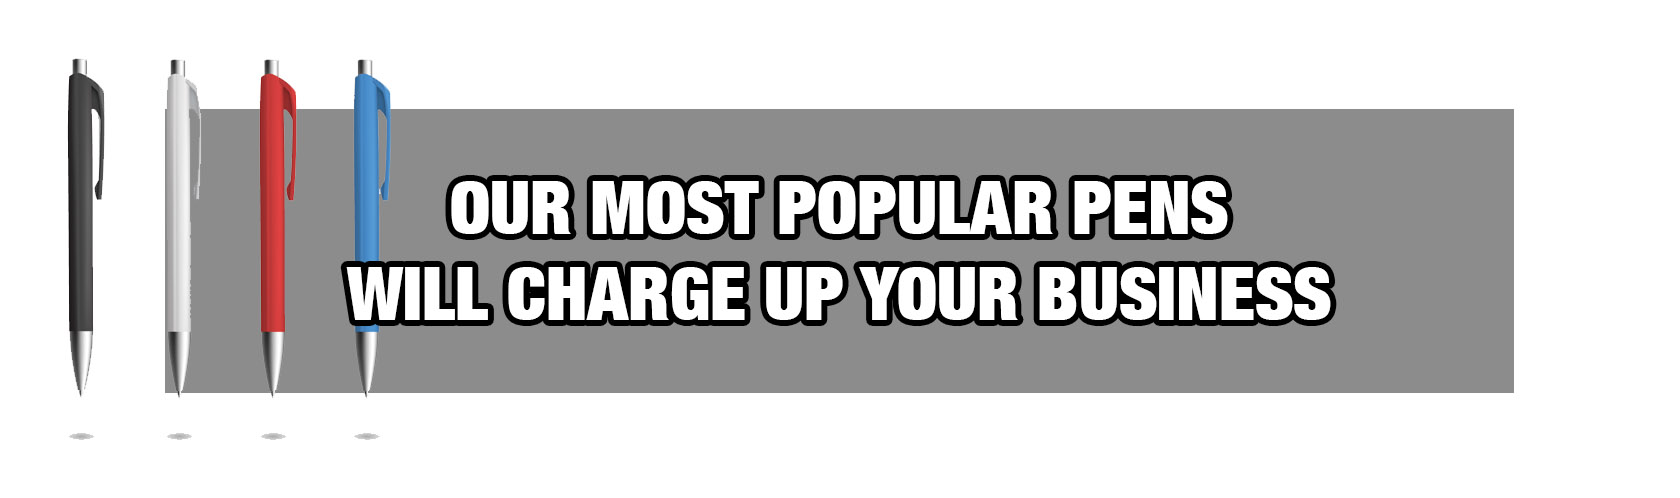 Our Most Popular Pens will Charge Up Your Business!